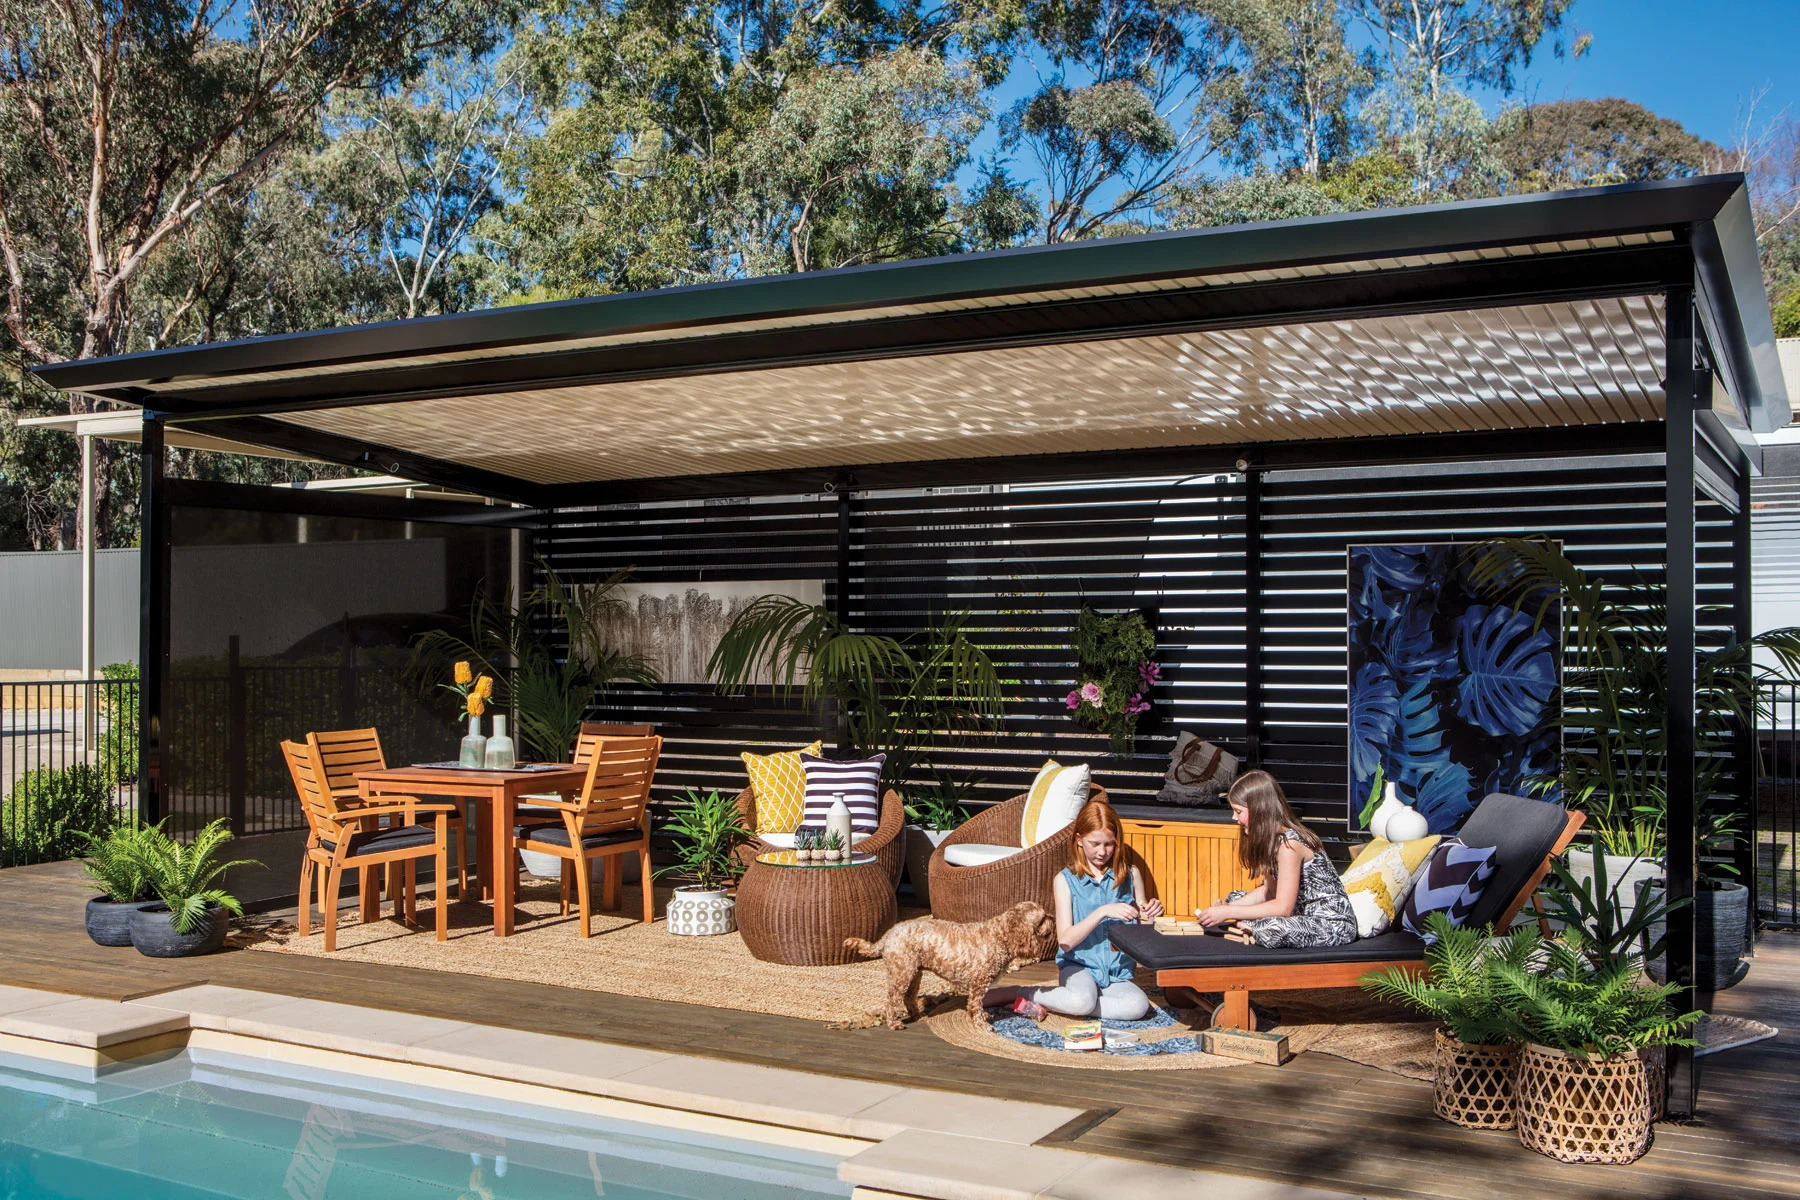 Make things warm and cozy with fire pits, rugs, and pillows galore